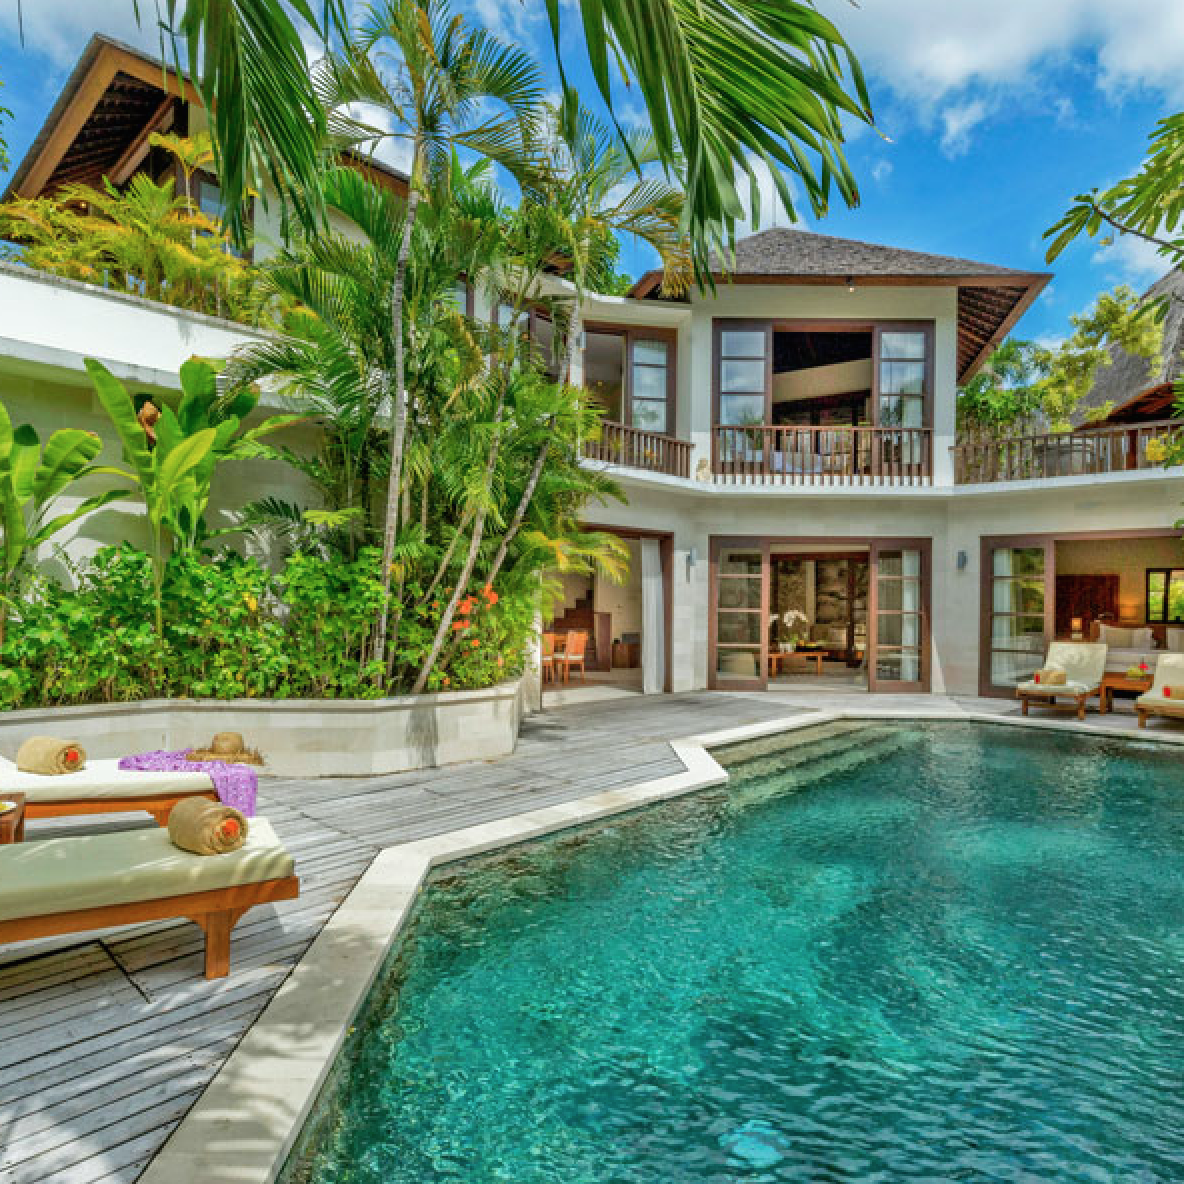 KUBU VILLAS, SEMINYAK, 1,2,3,5,7,8 bedrooms, $295 – $1,945 per night